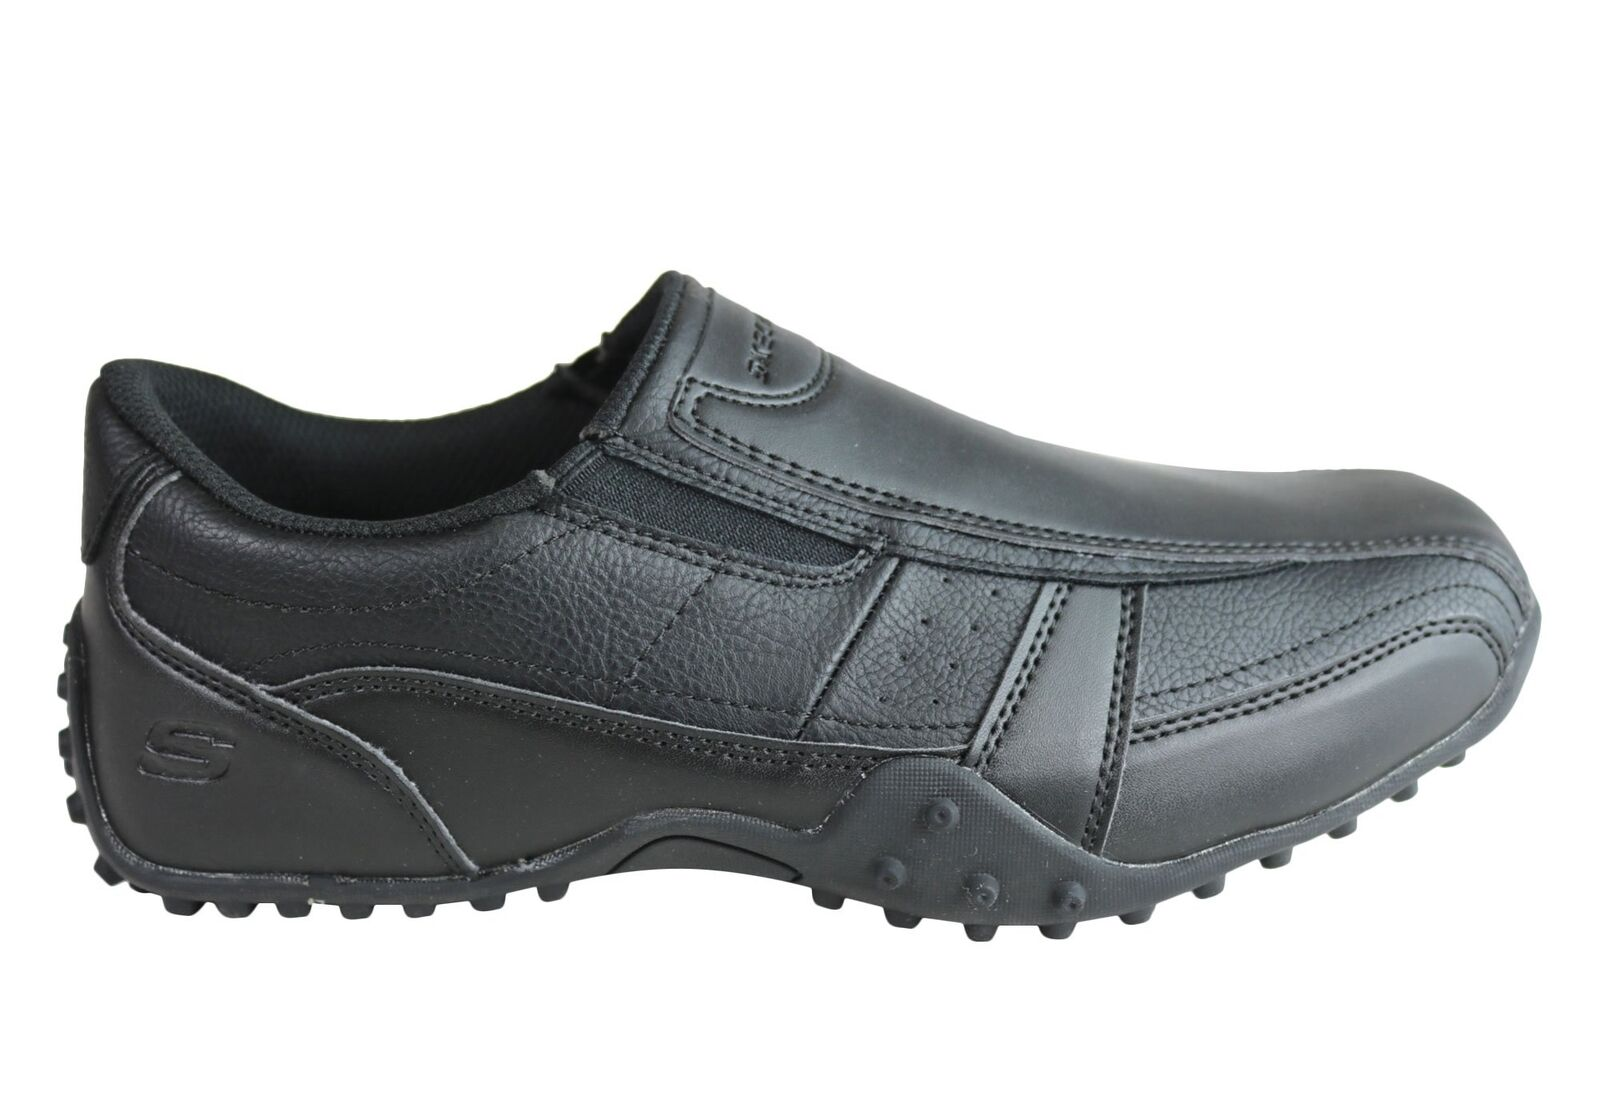 Skechers Relaxed Fit Elston Kasari Slip Resistant Work chaussures Pour des hommes - WorkWearZone